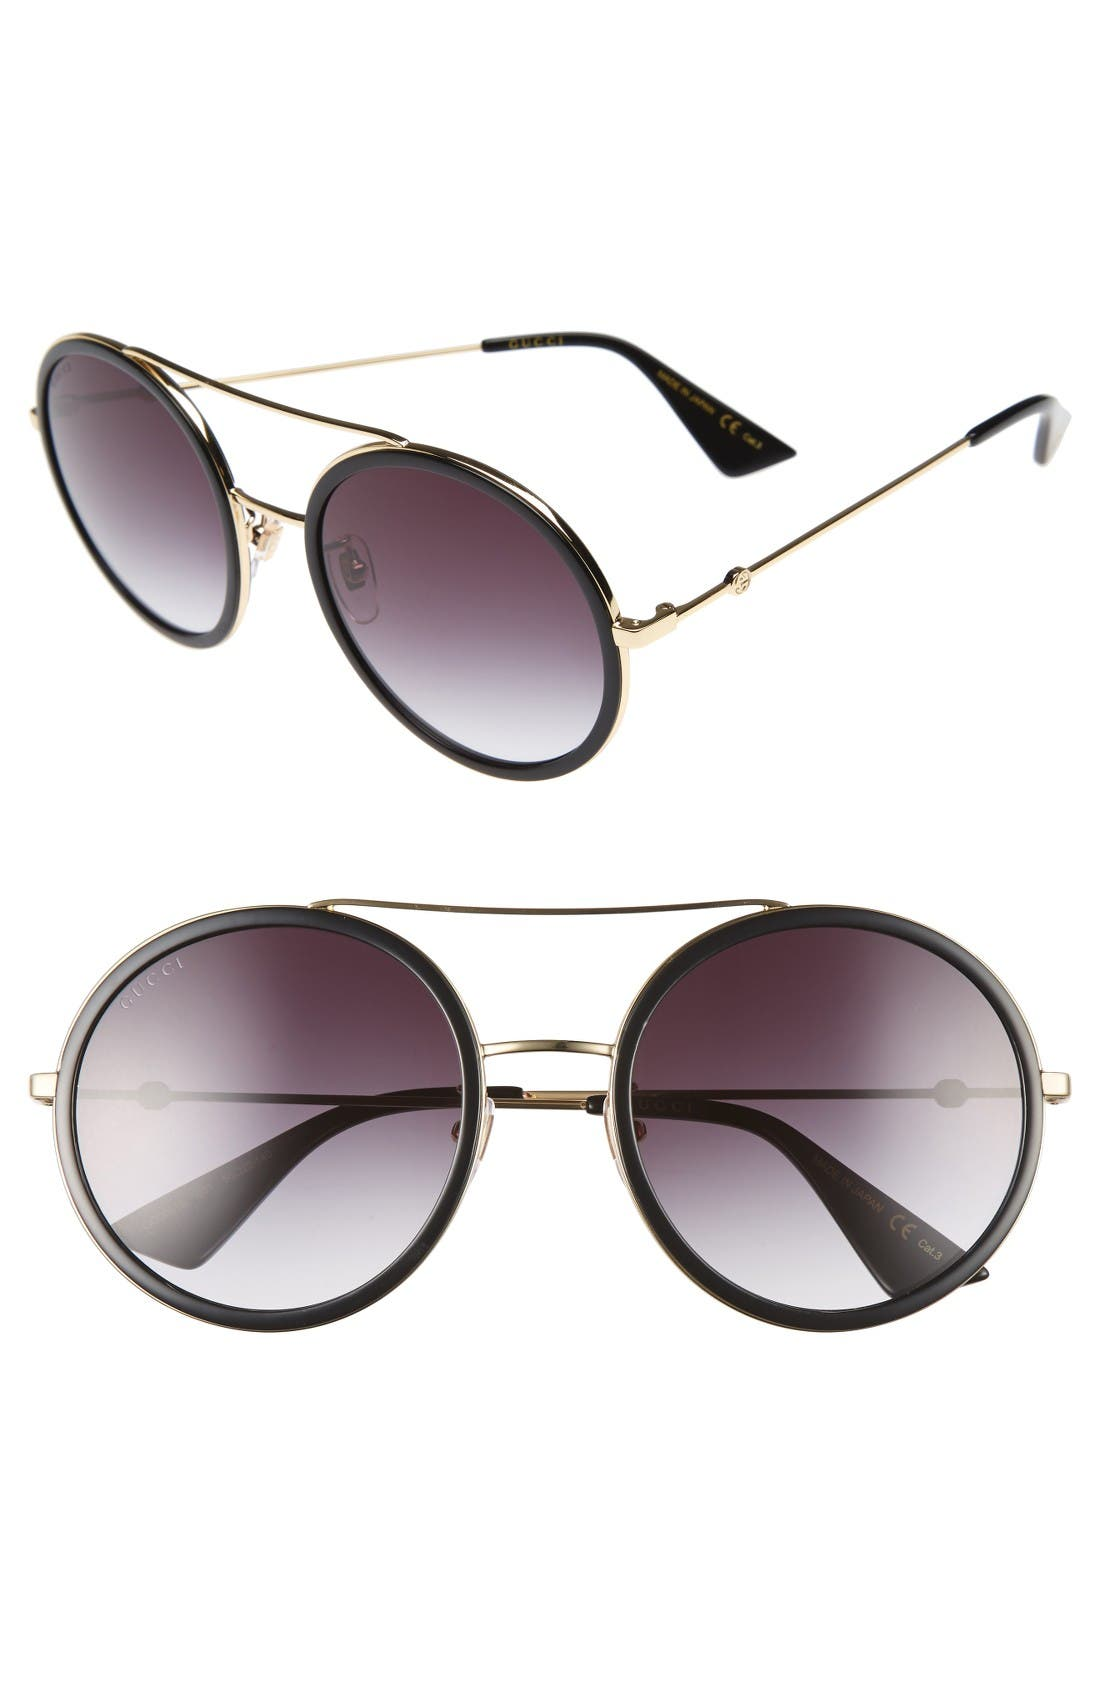 97889e8b31 Gucci Women s Sunglasses